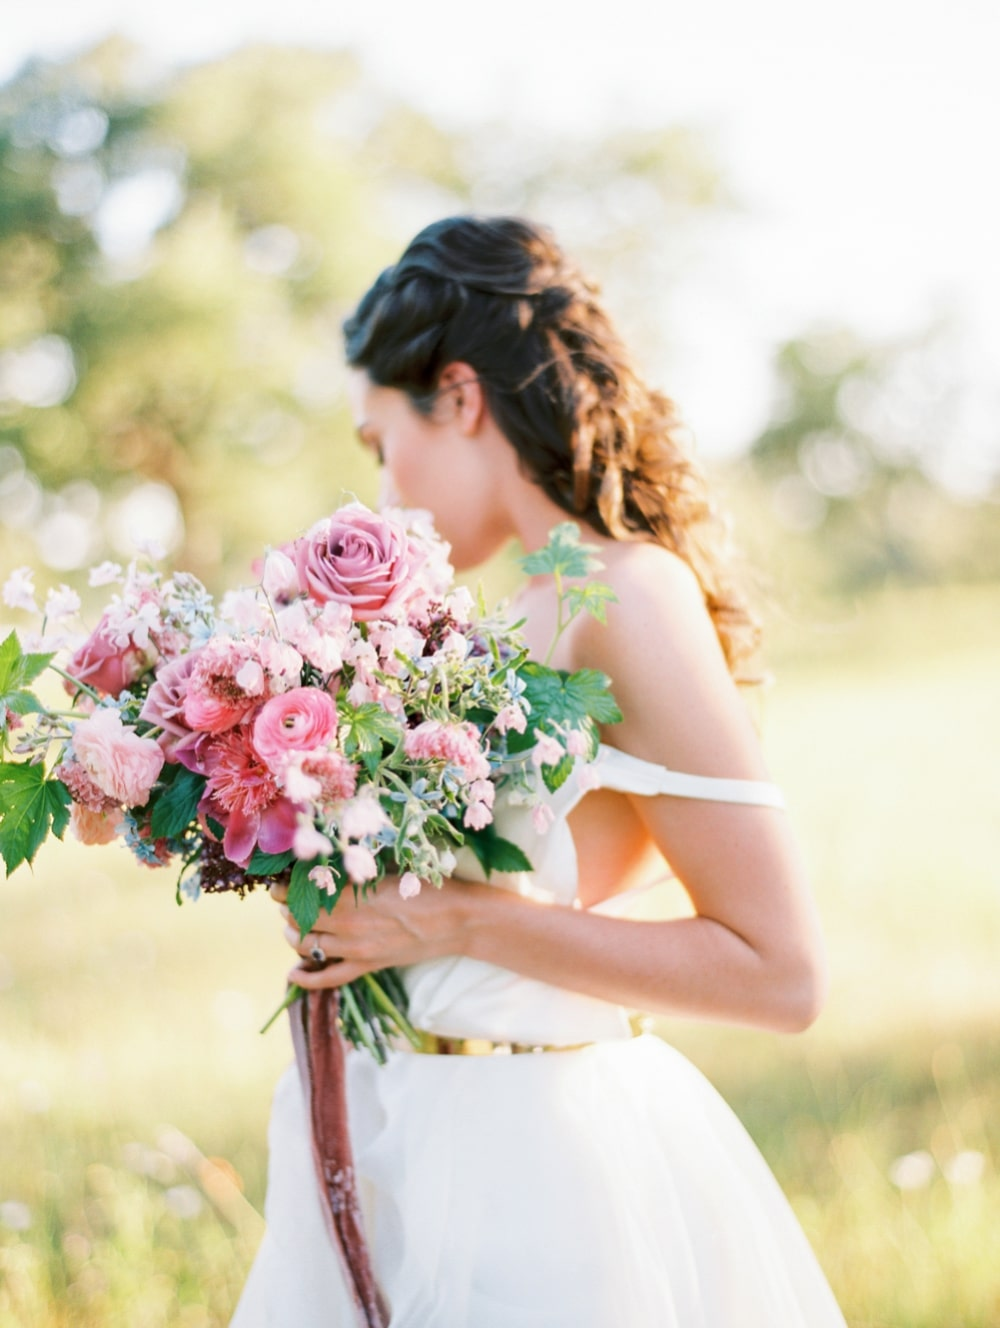 kristin-la-voie-photography-Austin-Wedding-Photographer-5